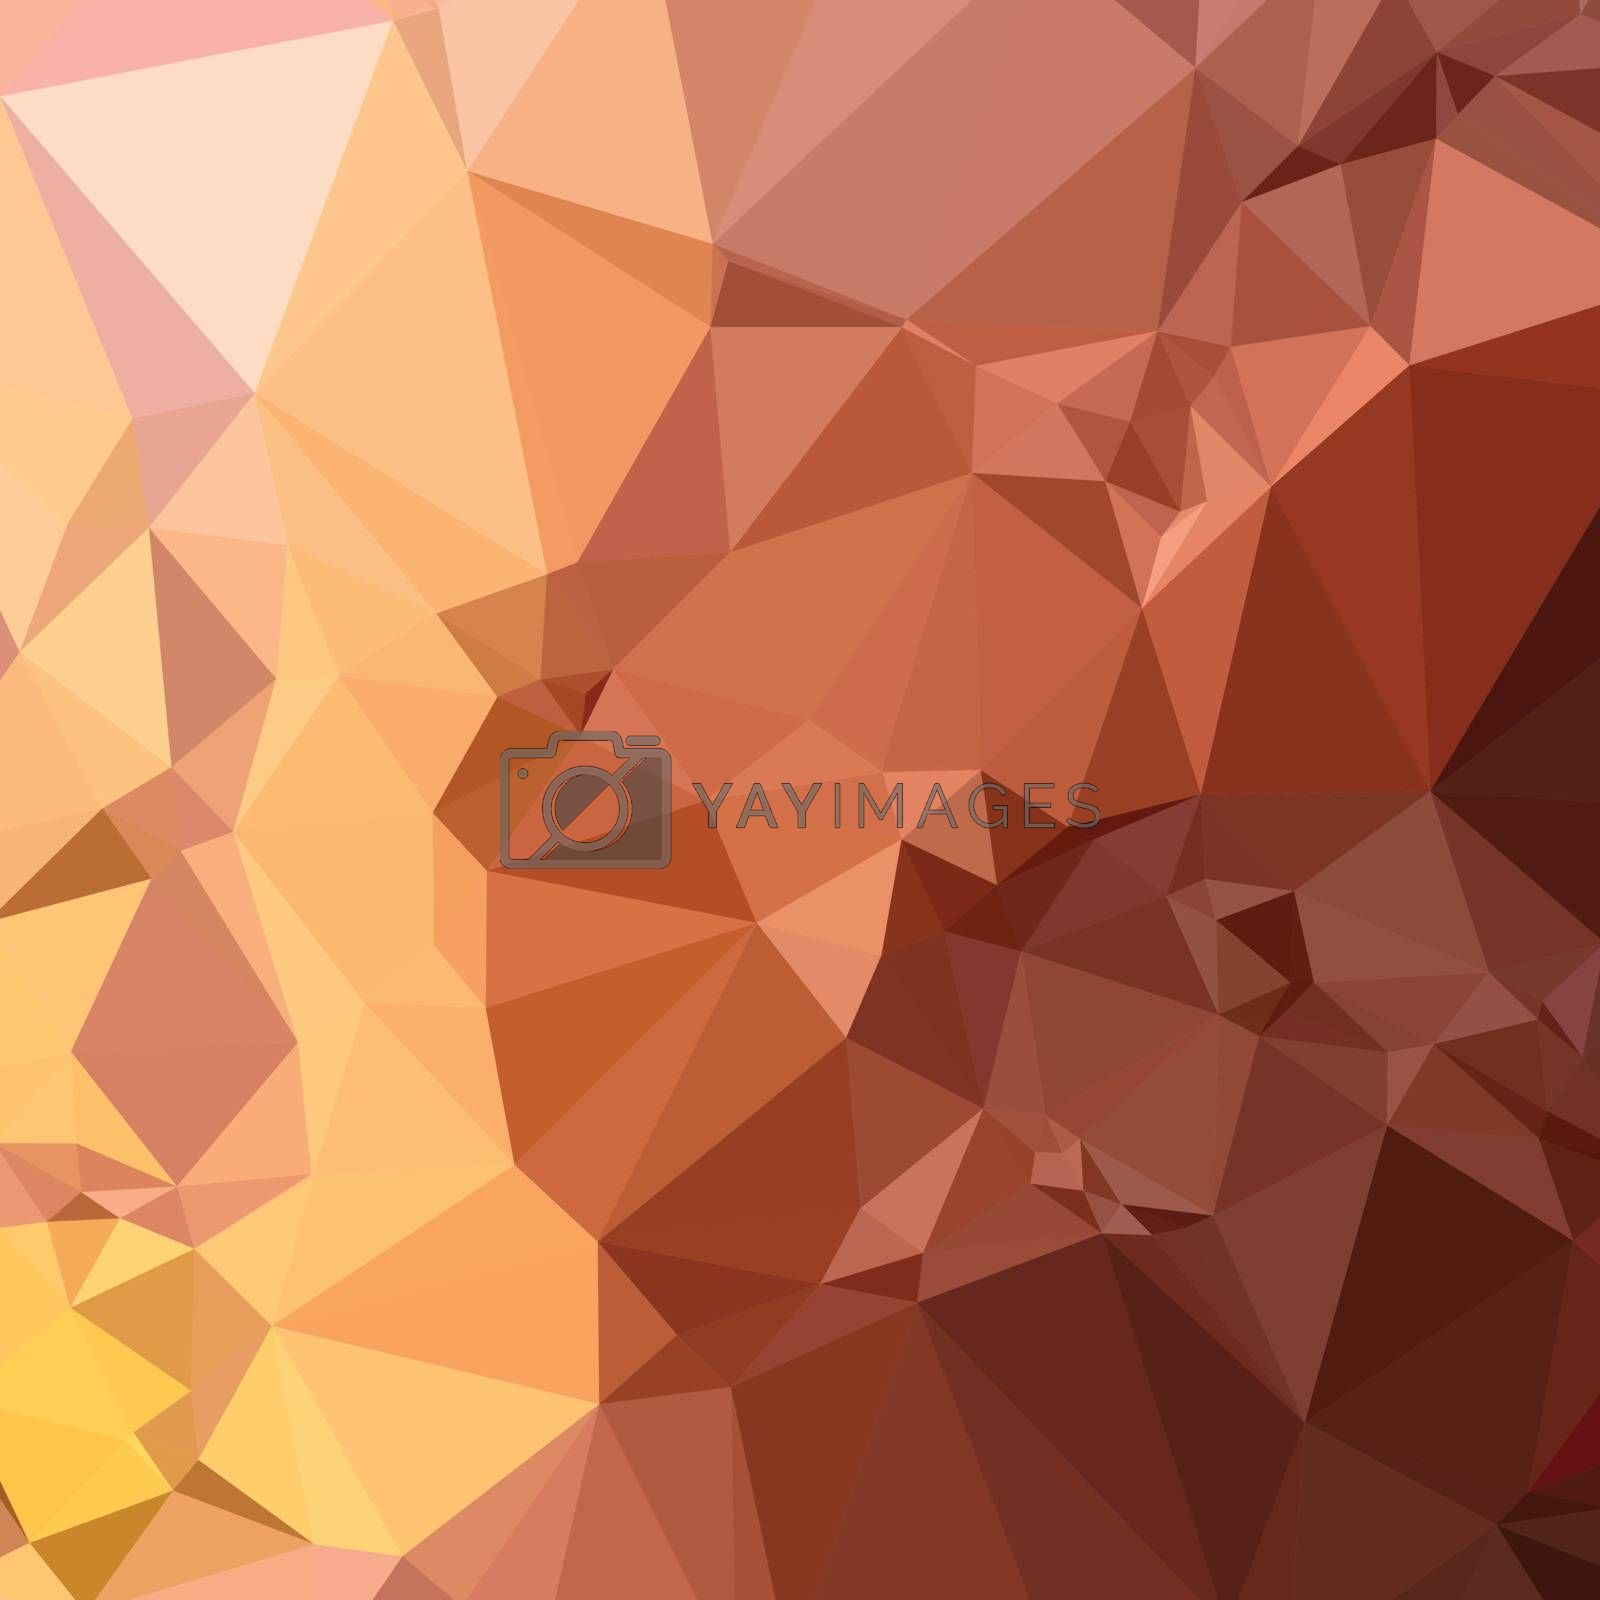 Low polygon style illustration of a cordovan brown abstract geometric background.